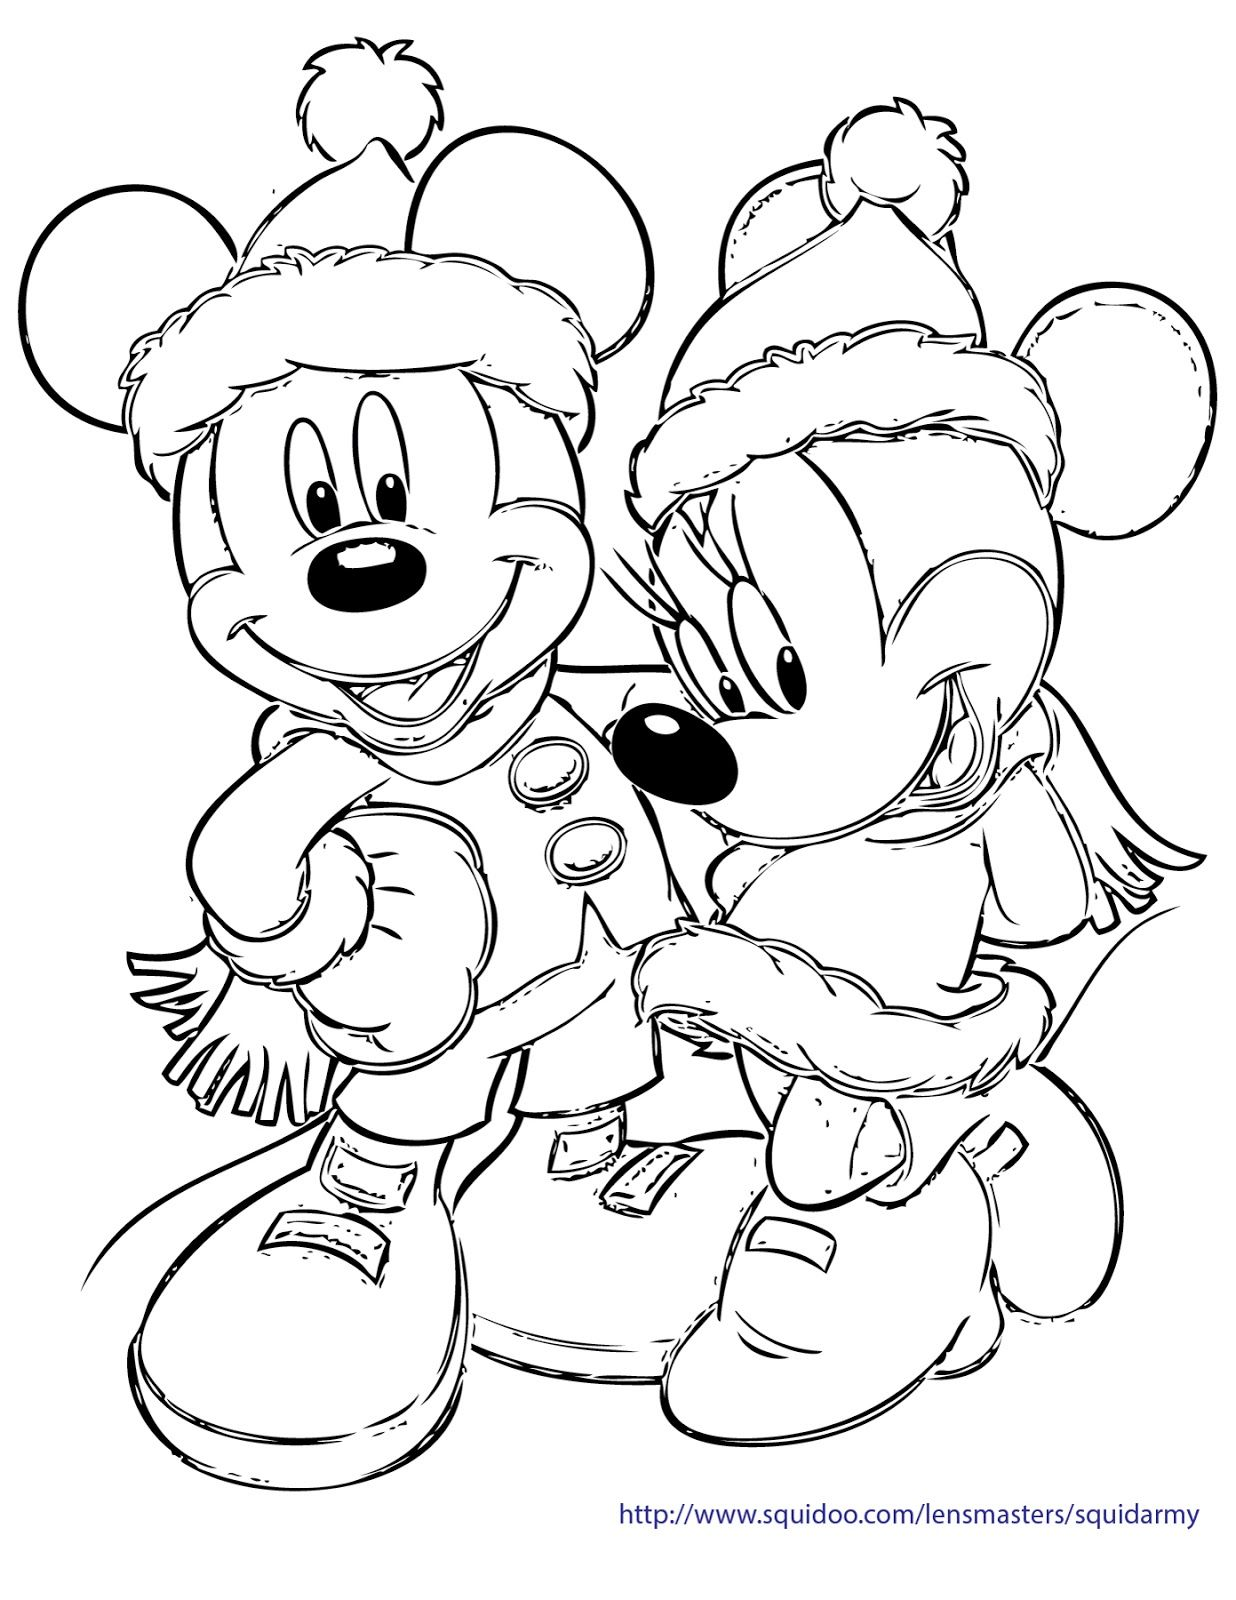 Christmas coloring pages can be fun for children of any ...